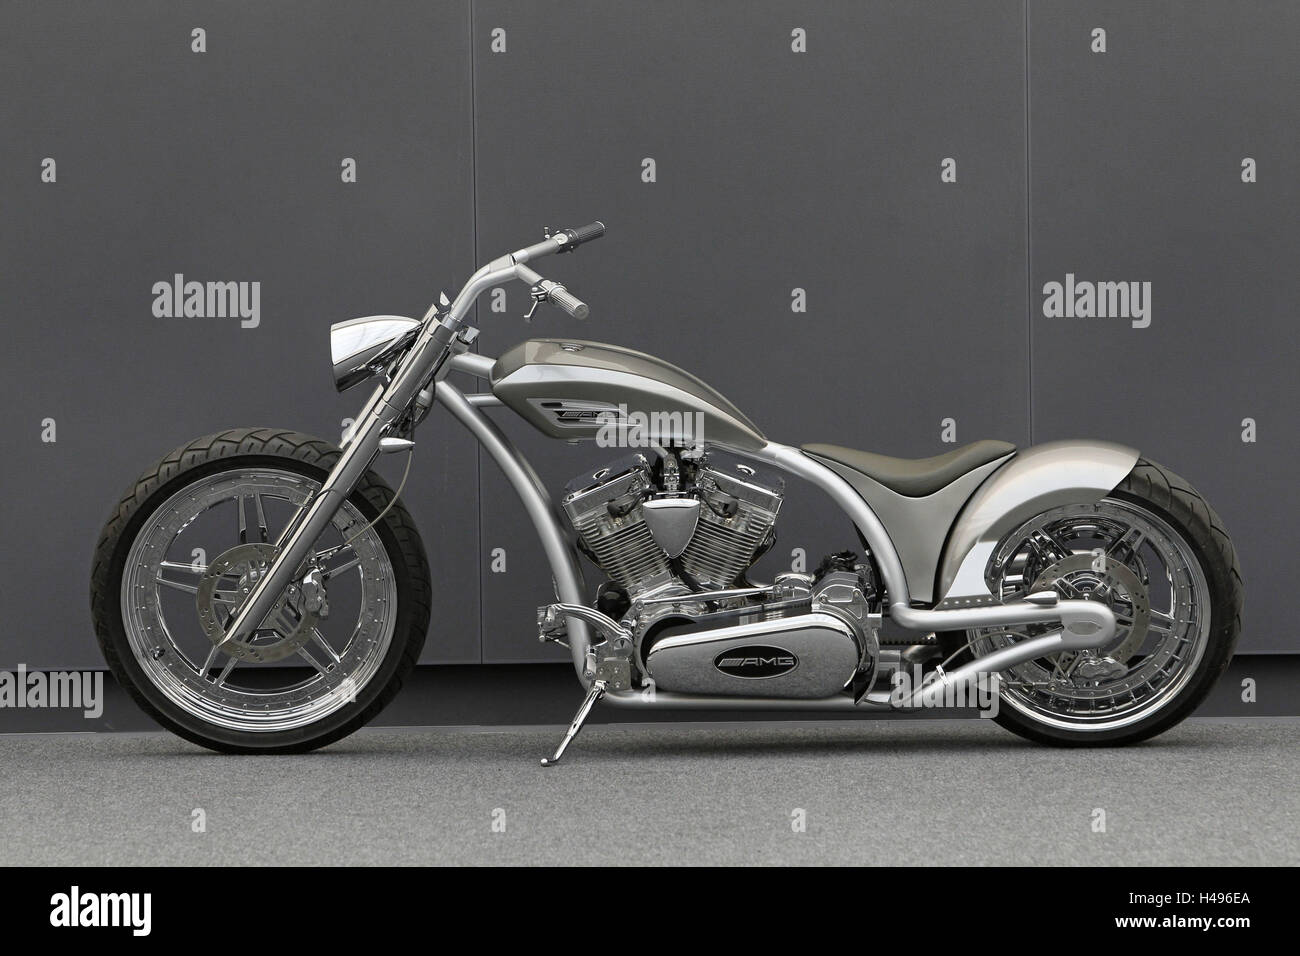 Motorcycle, chopper AMG, left page, silver, design motorcycle, - Stock Image